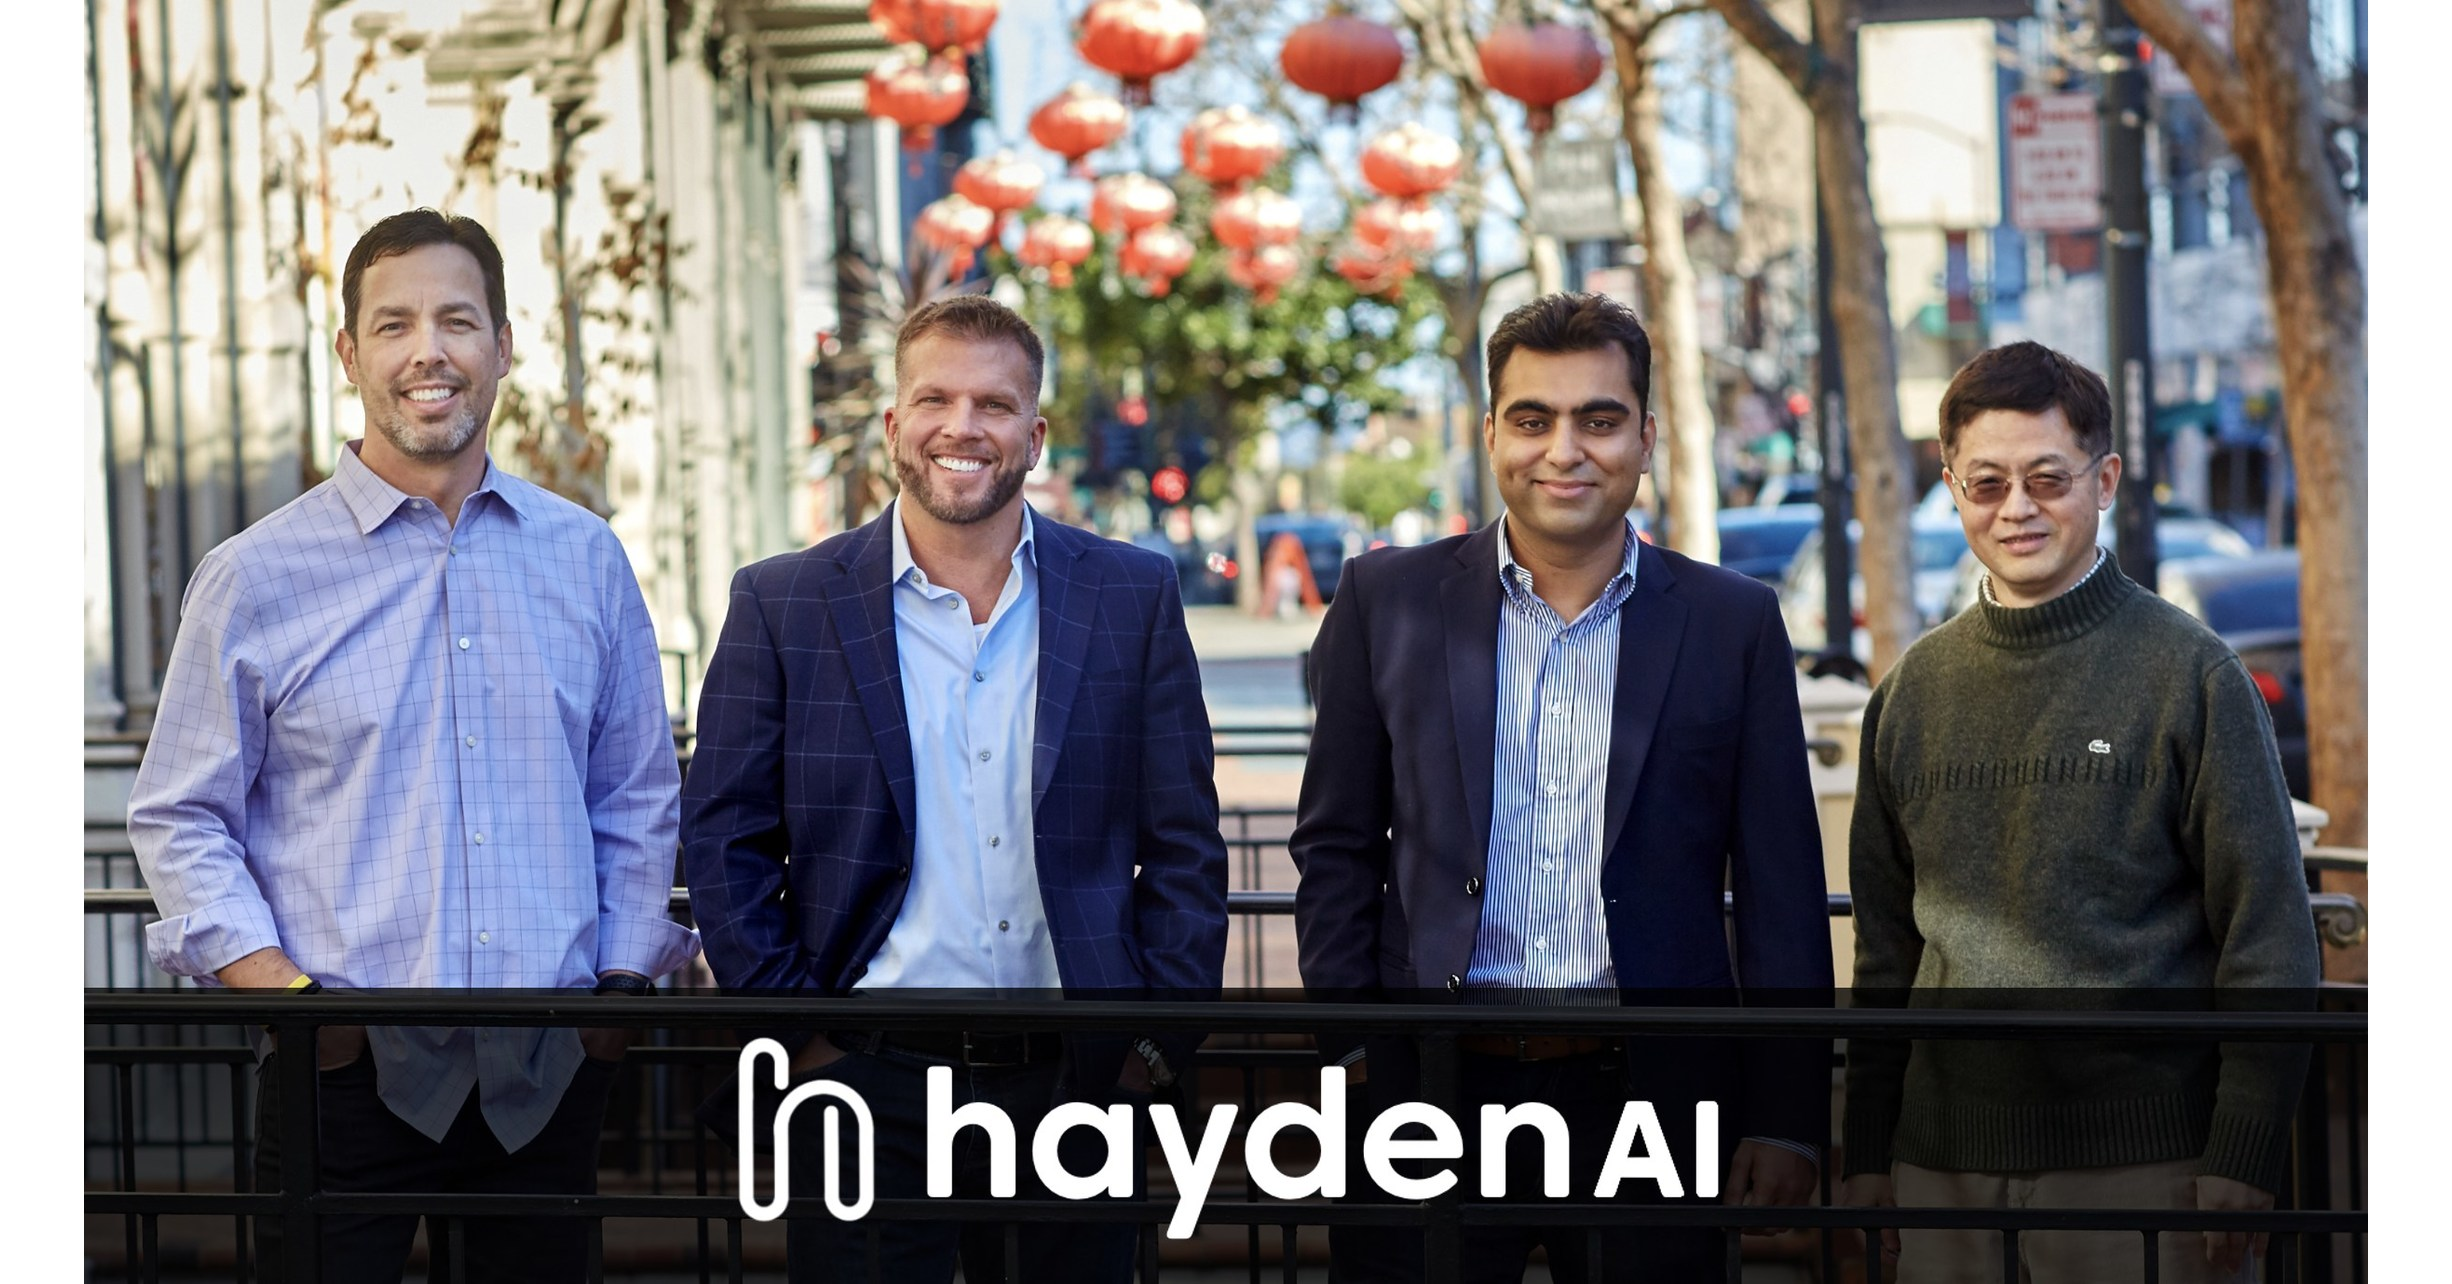 Access here alternative investment news about Hayden Ai Raises $20M In Series A Funding Led By Tyh Ventures To Scale Their Autonomous Traffic Management Platform